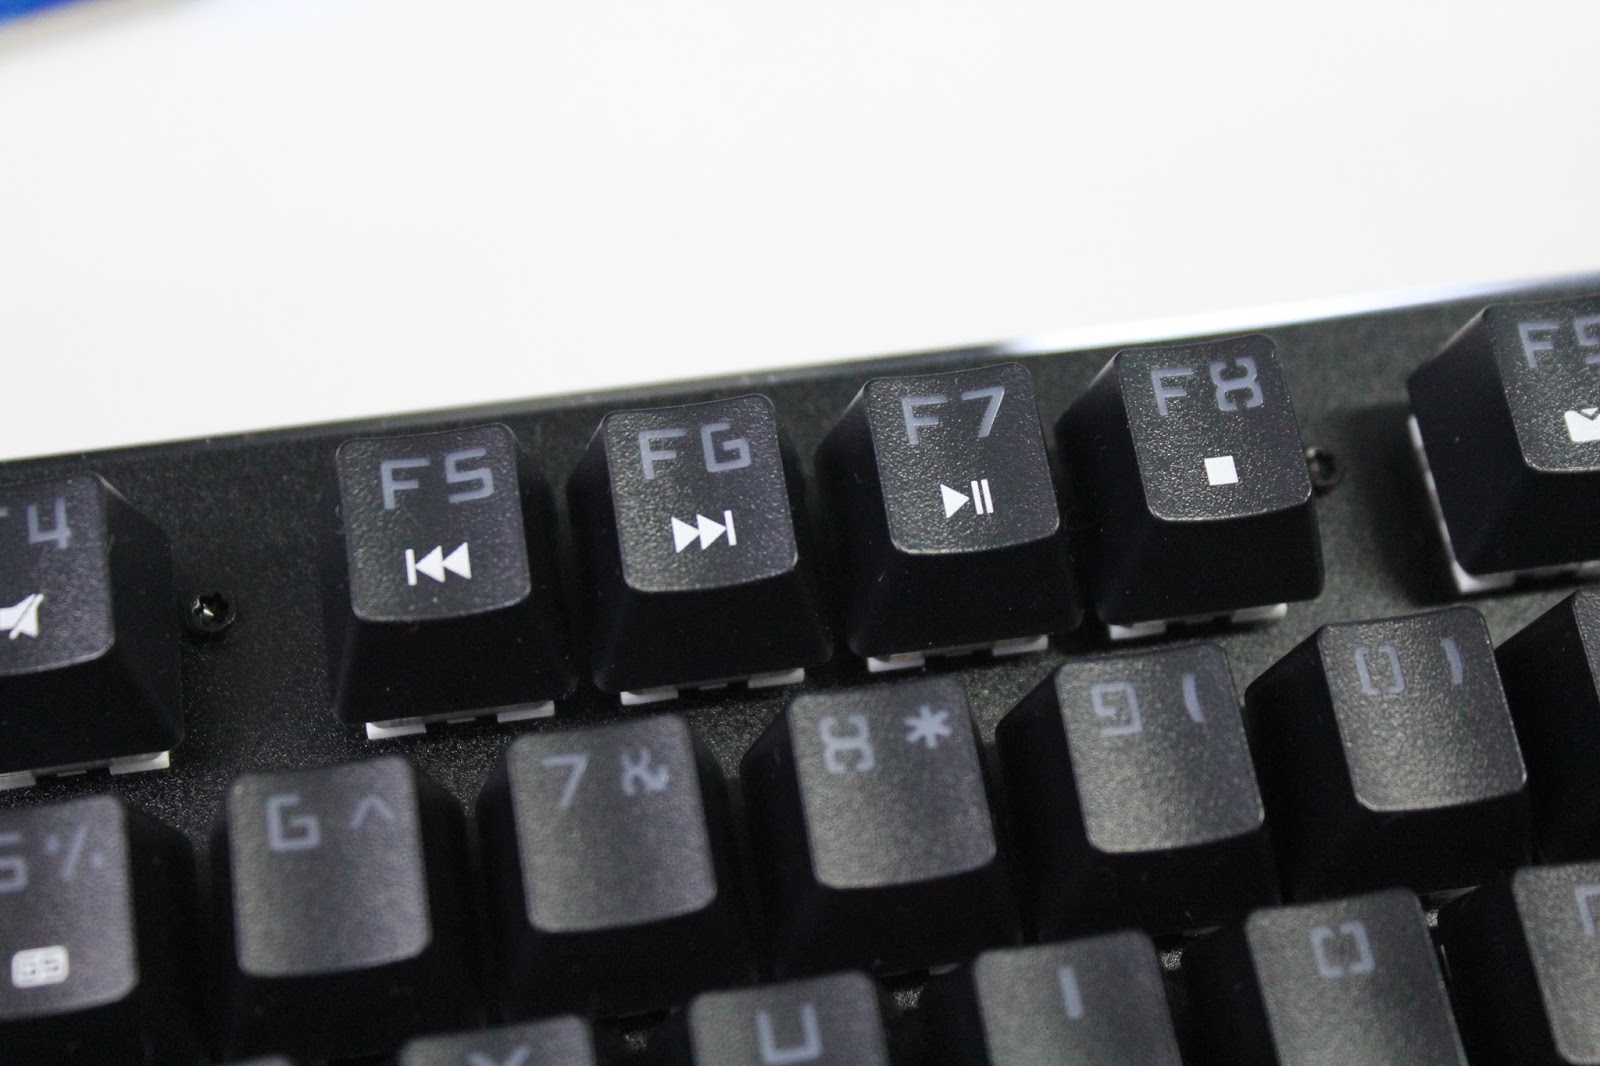 Review - Imperion Mech 10 Mechanical Keyboard 14